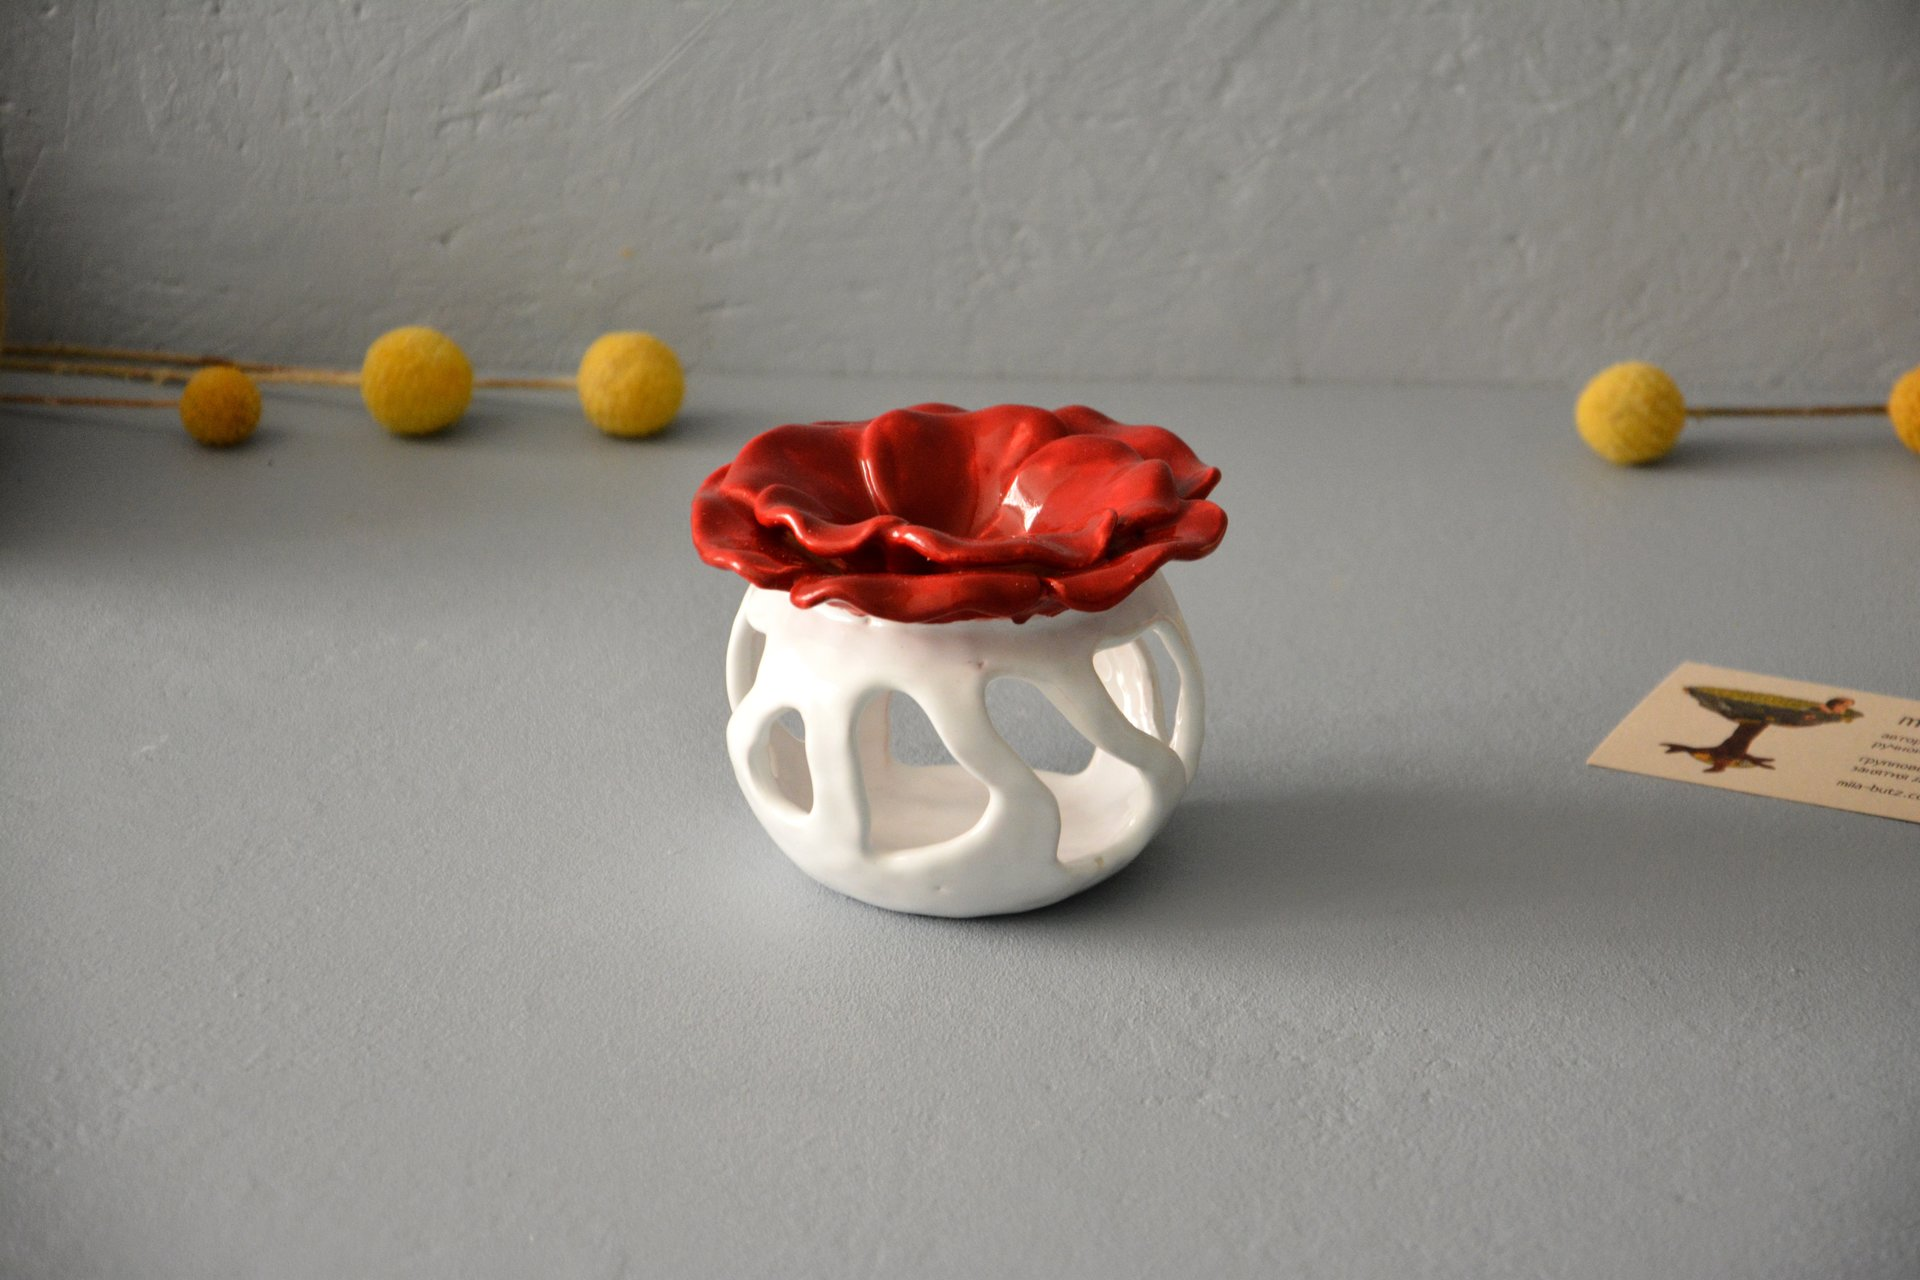 Ceramic Aroma Lamp Poppy, White with Red, color - white with red, height - 8.5 cm, diameter - 9 cm, photo 2 of 5.